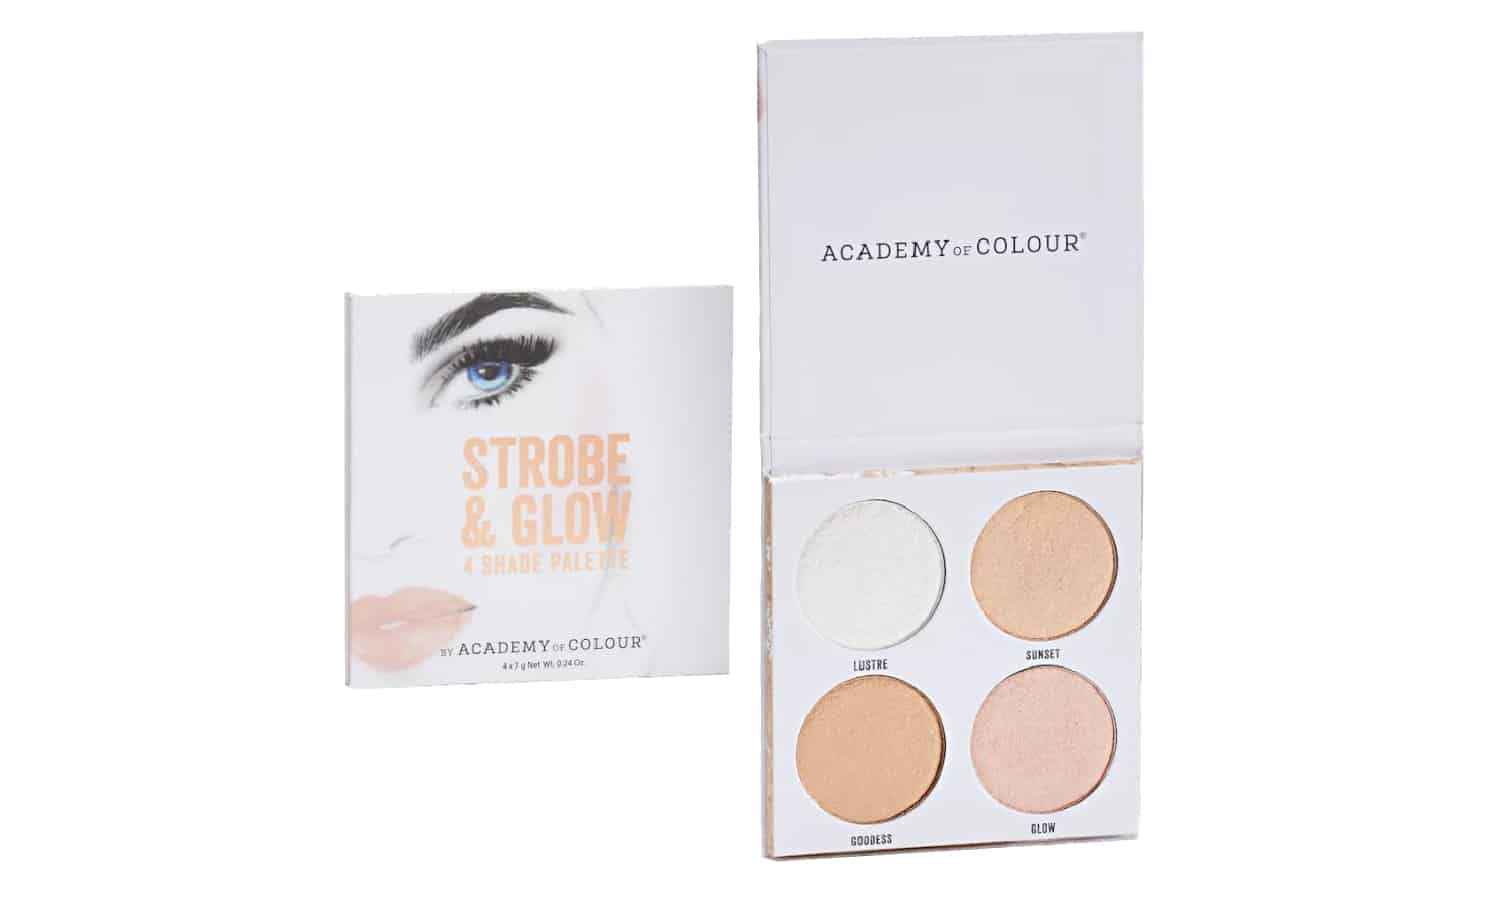 Strobe and Glow 4 Shade Palette by Academy of Colour